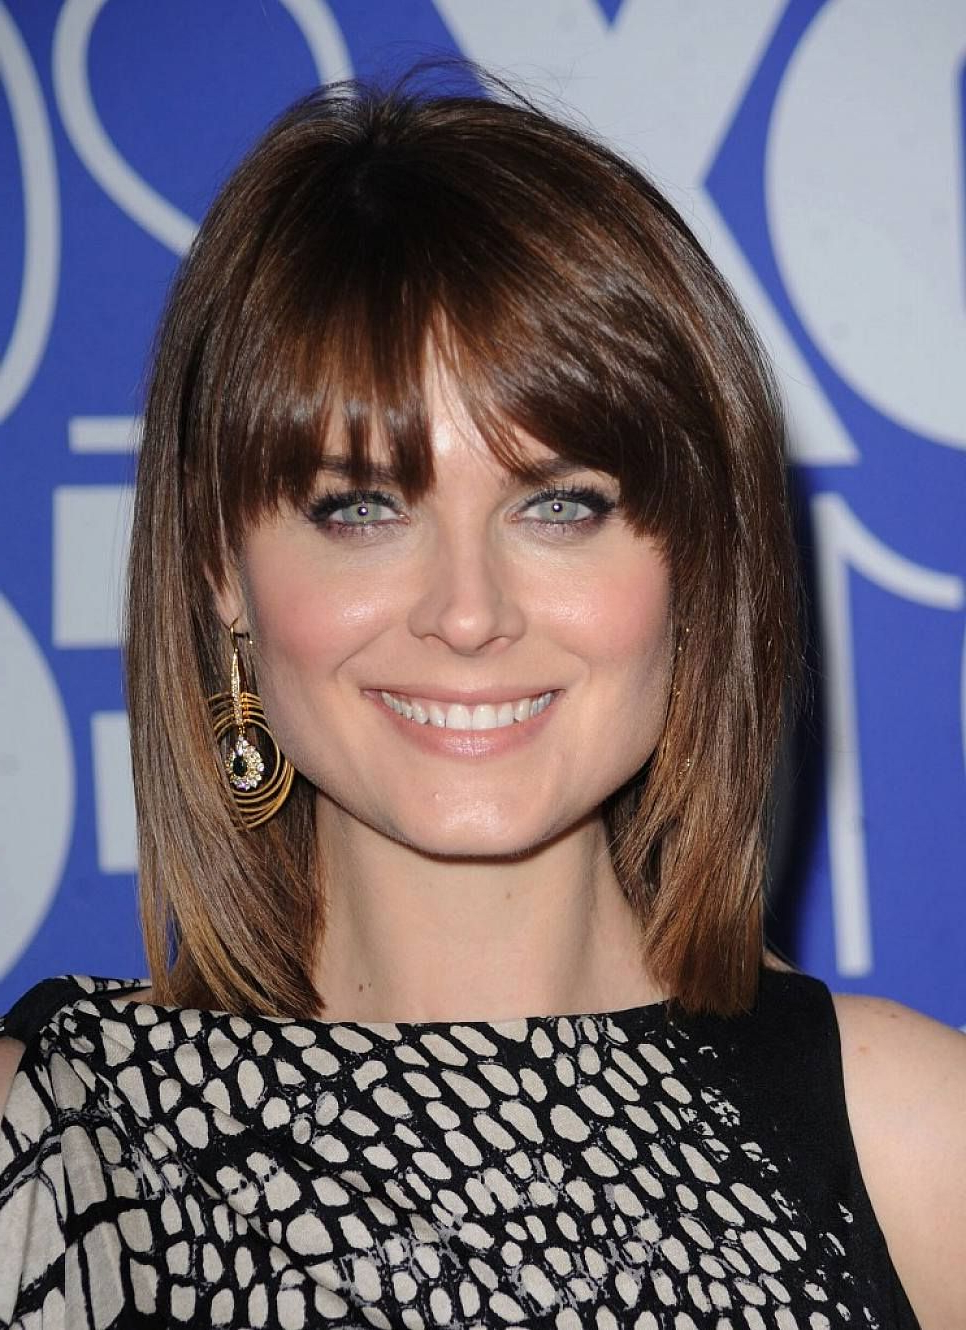 Current Medium Haircuts With Bangs For Round Faces Intended For Hairstyles Shoulder Length With Bangs For Round Faces (View 5 of 20)